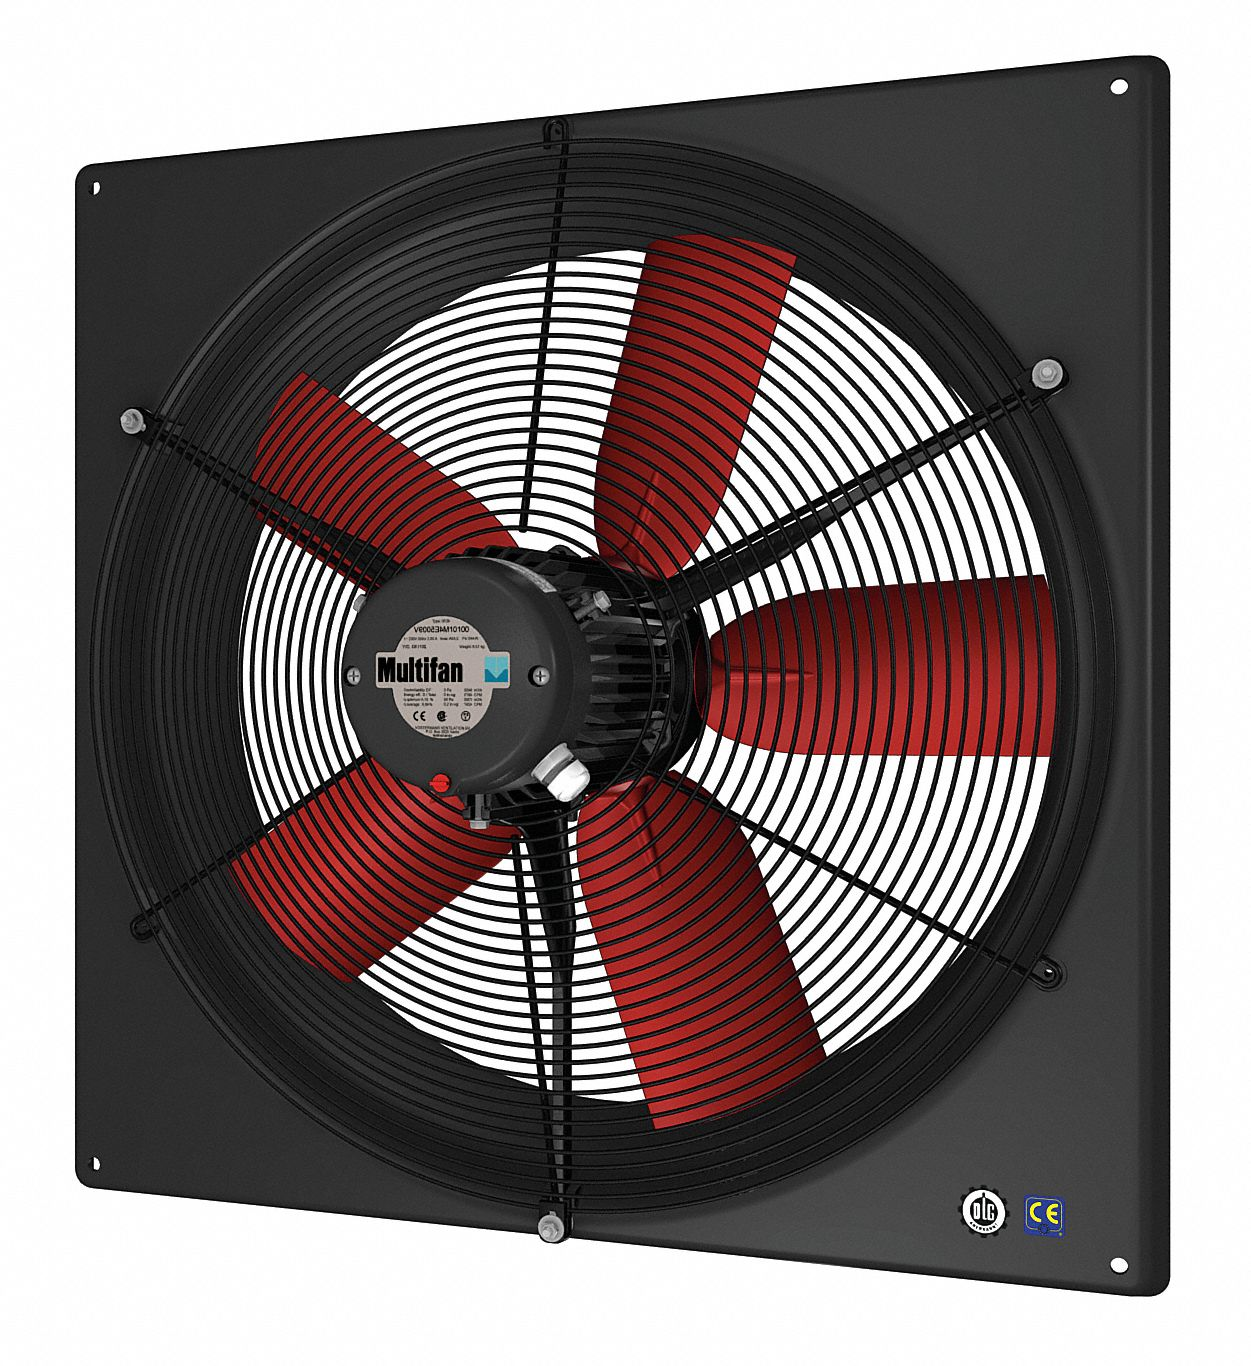 "30 1/2 in"" x 30 1/2 in"" 120V ACV Corrosion Resistant, Medium Performance 1-Phase Exhaust Fan"